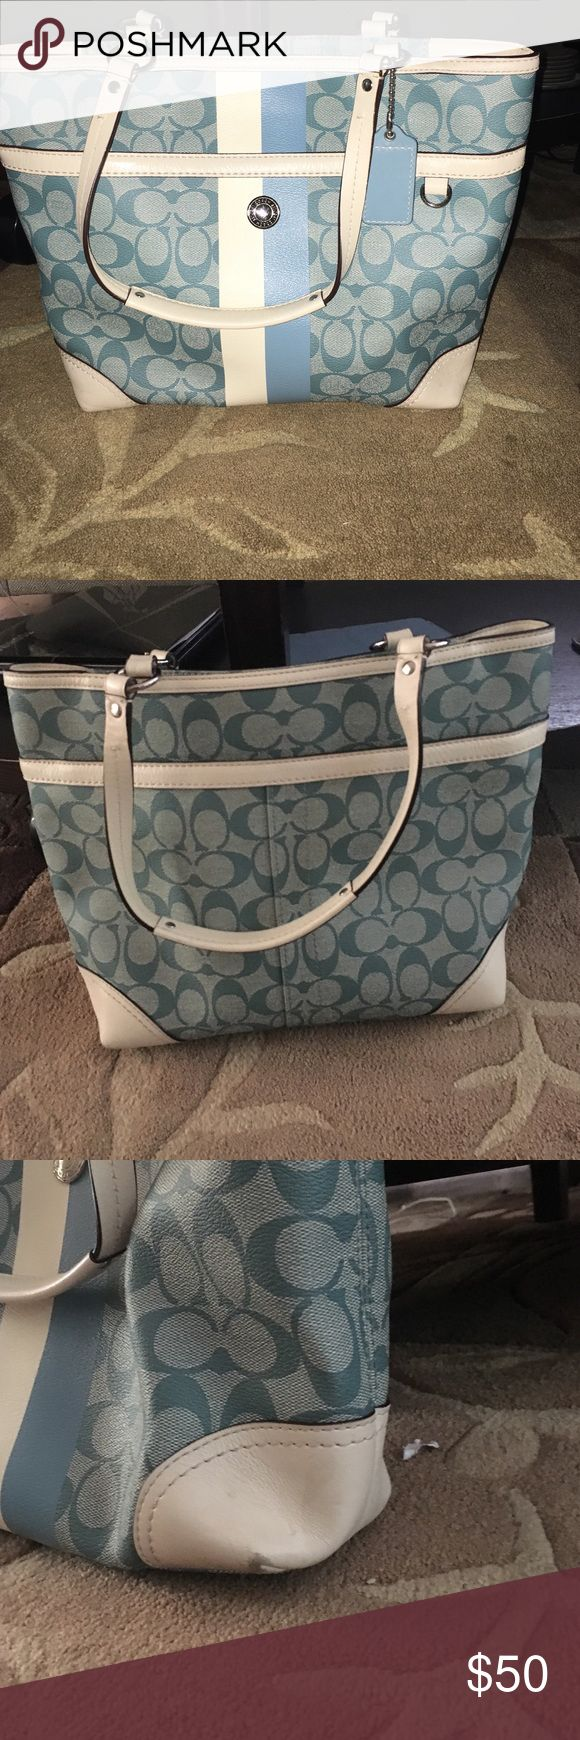 """Blue and white authentic coach tote bag Authentic blue and white coach tote bag perfect for the summer! Lightly used. Very small marks in the bottom corners and inside bag shown in pictures. 13"""" (L) x 11"""" (H) x 4"""" (W) Coach Bags Totes"""